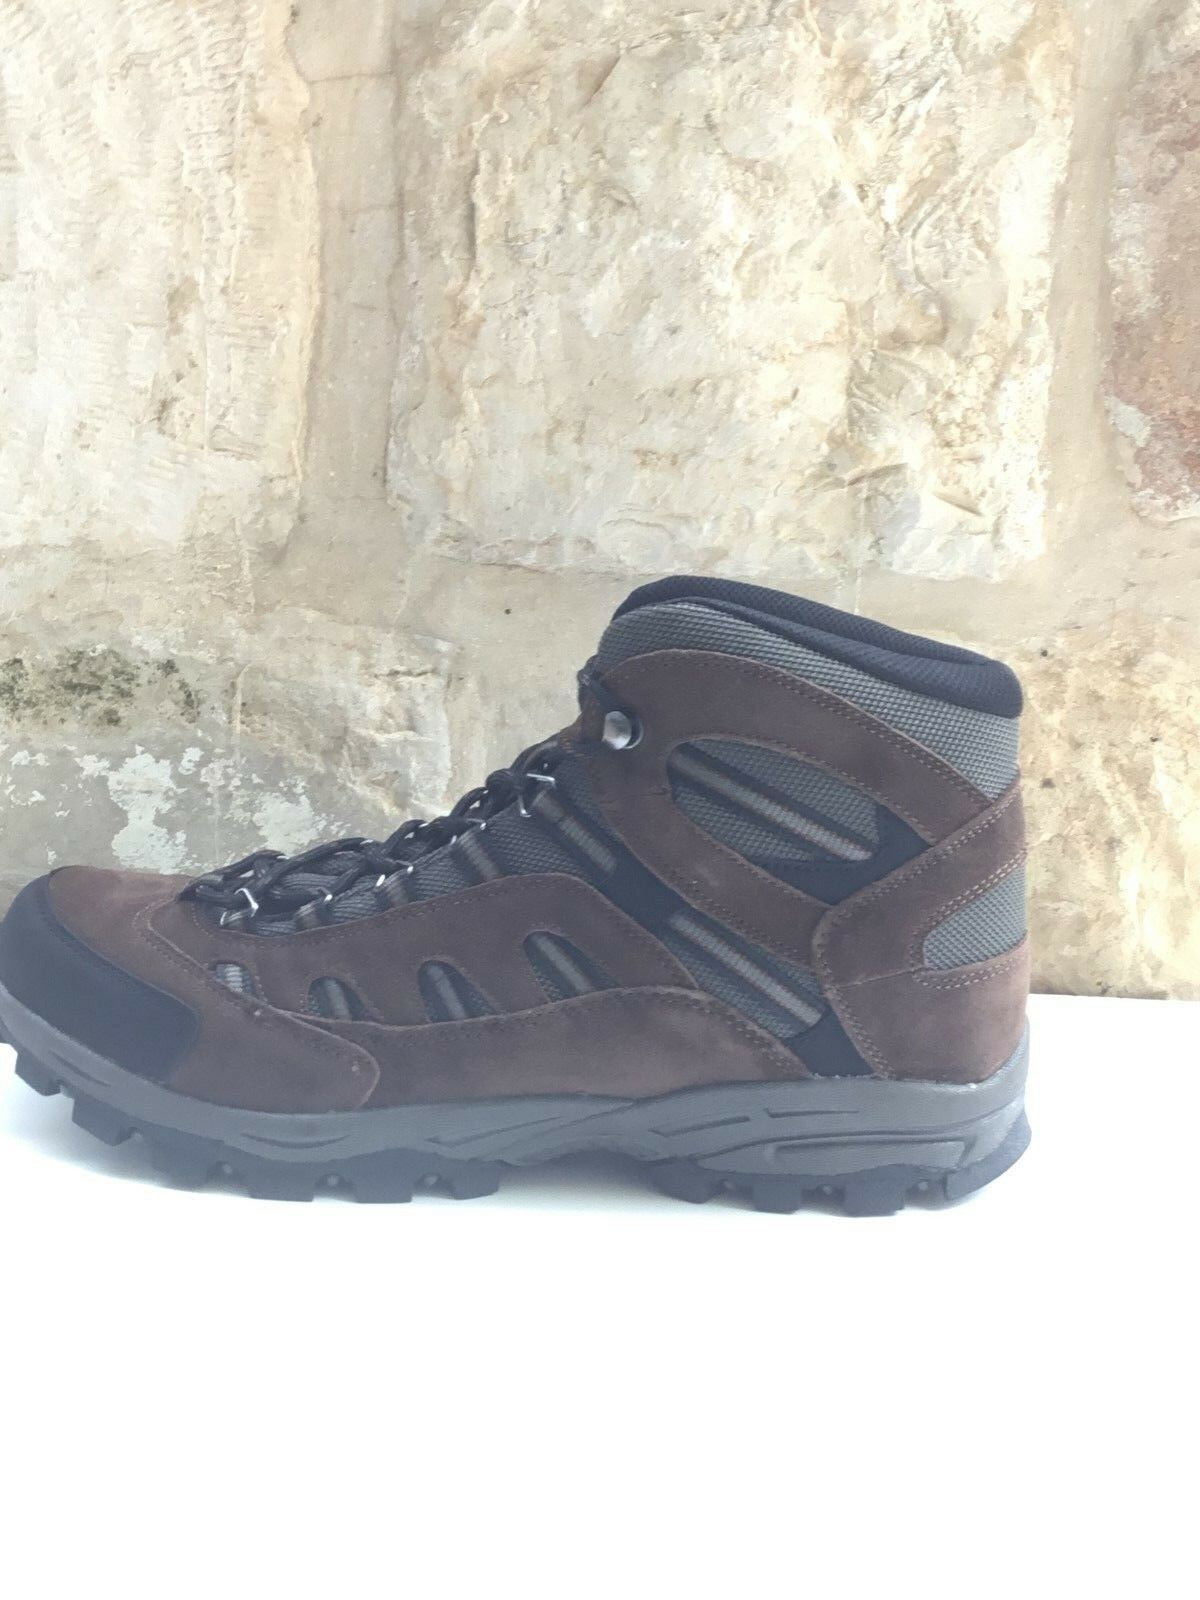 TRUE NORTH Uomo Uomo Uomo Hiking Stivali Brown/Nero Sz 13 / 47 NIB, more sizes available 9105aa